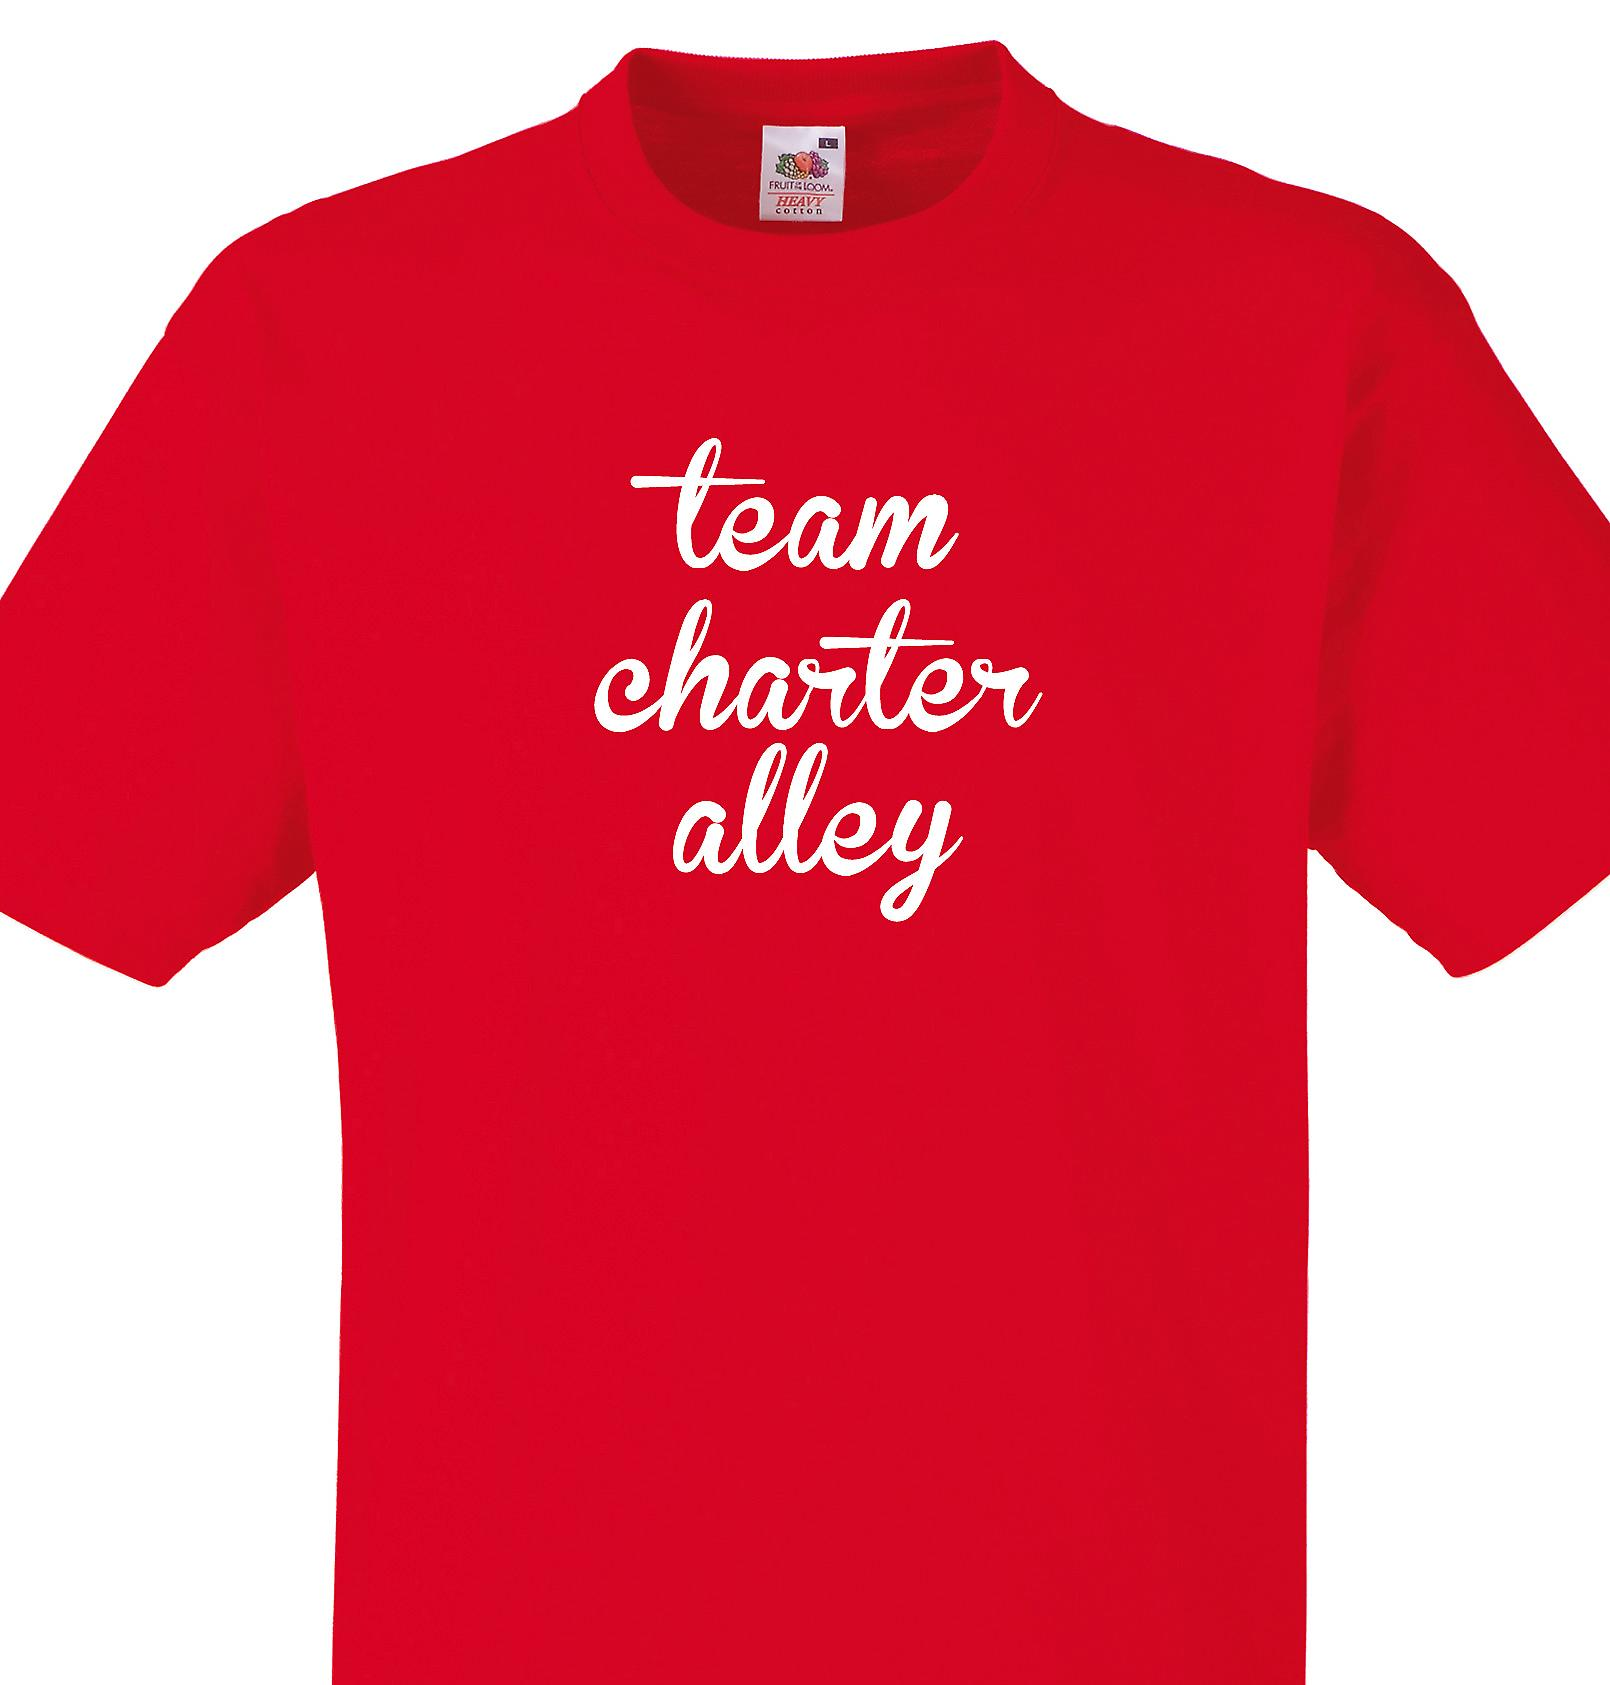 Team Charter alley Red T shirt